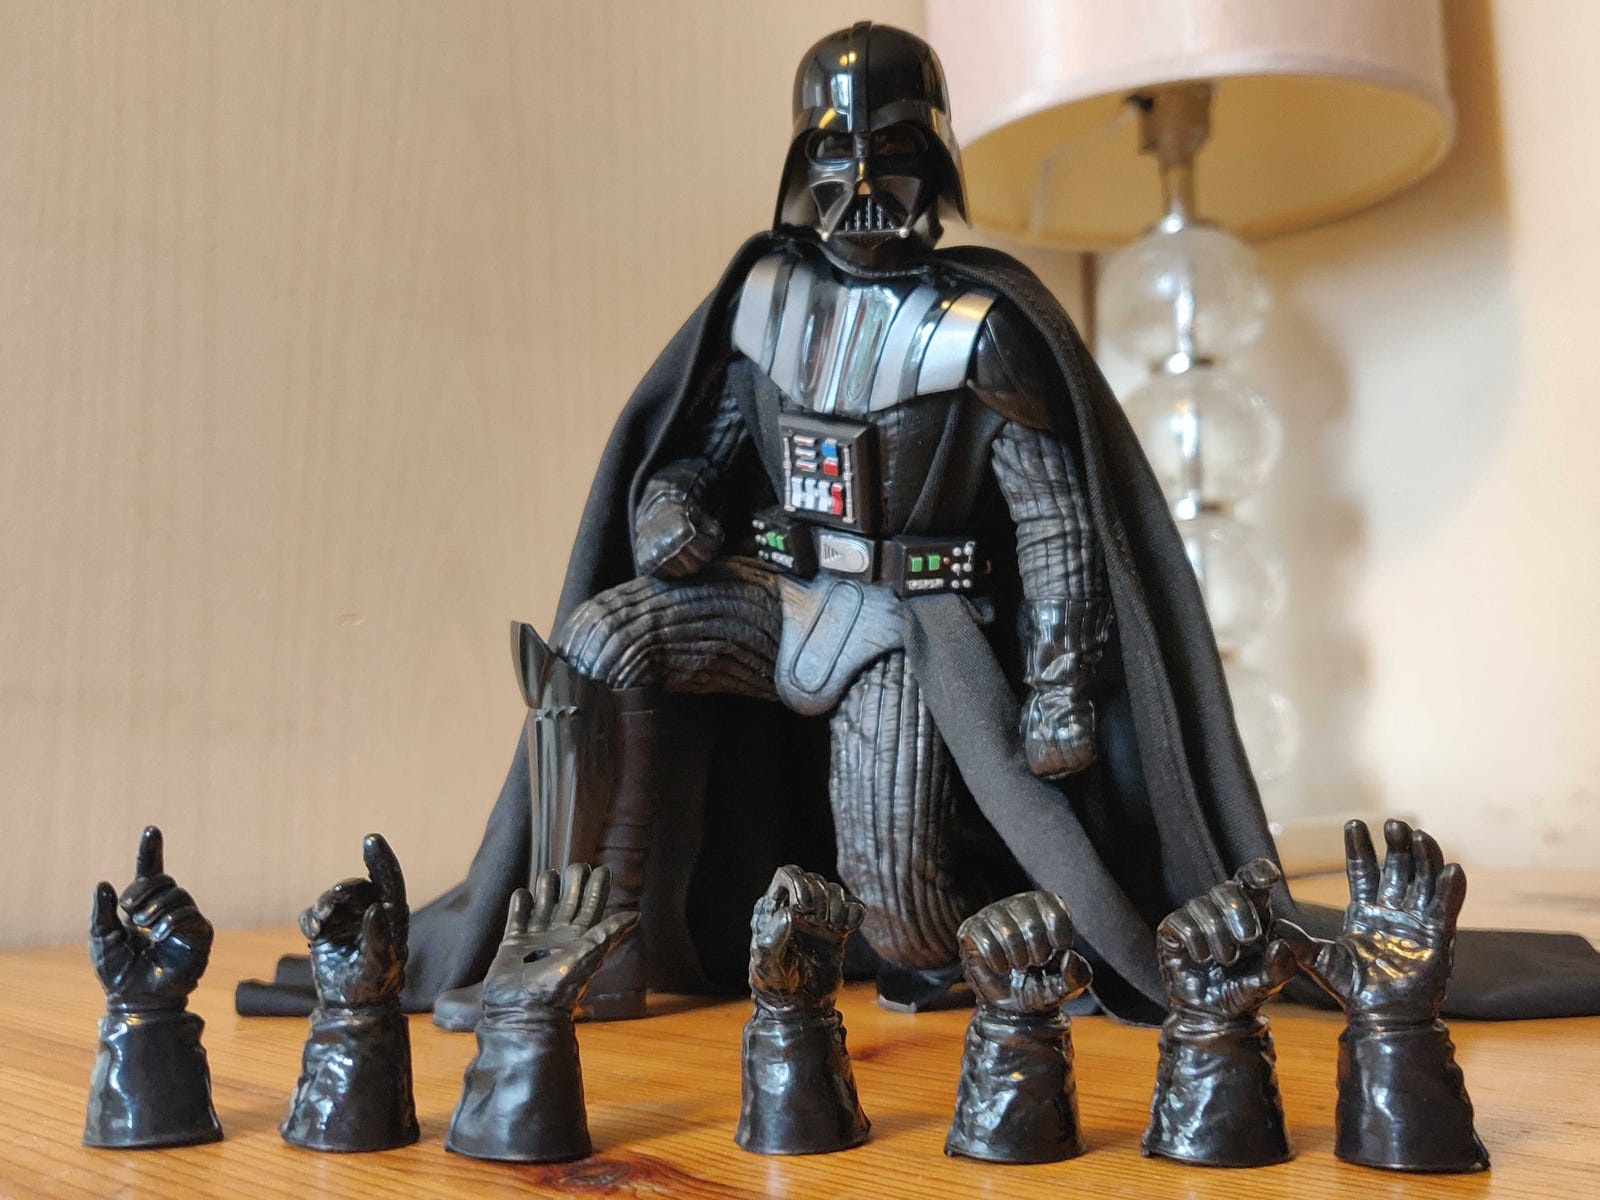 Vader mainly comes with a giant array of swappable hands. Other than that, he has a stand, his lightsaber (with detachable blade), and a Force FX piece to replicate him blocking blaster bolts like he does on Bespin in Empire Strikes Back.